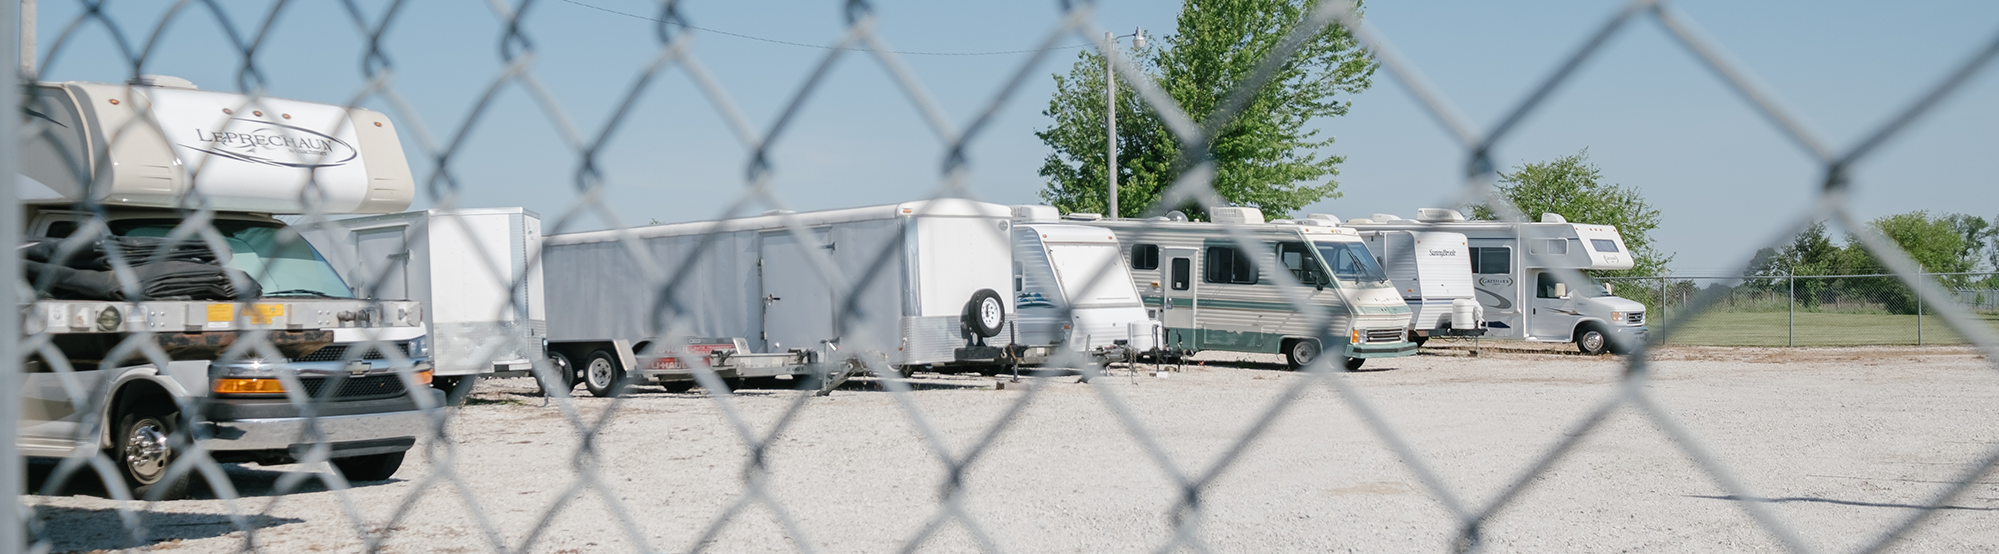 RV Fenced and Gated Self Storage